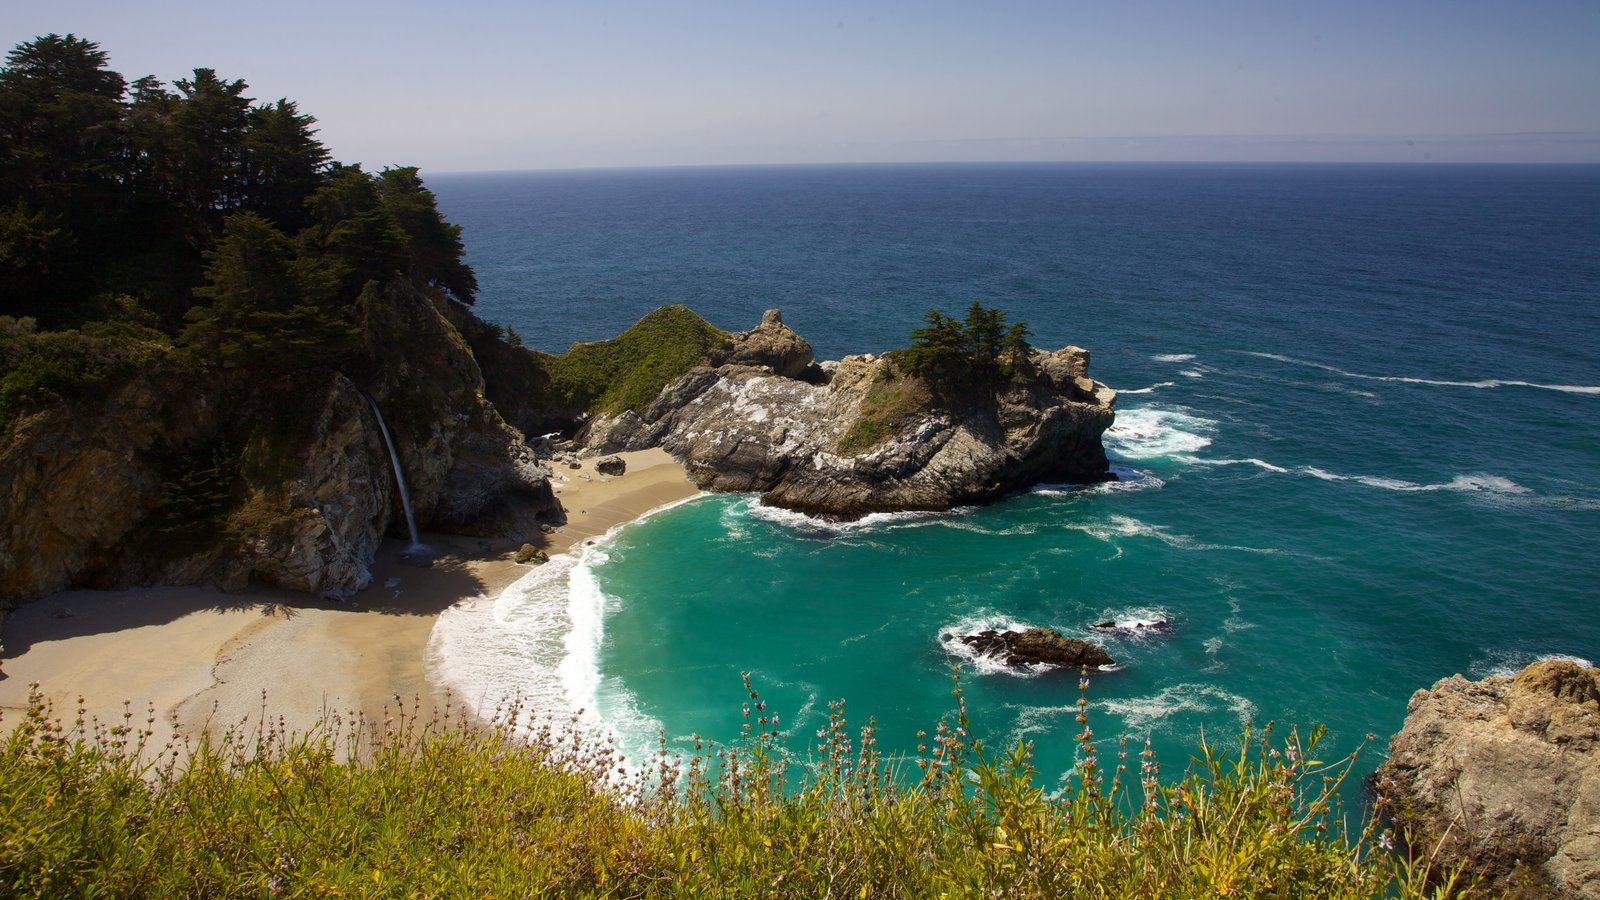 Pfeiffer Big Sur State Park showing rugged coastline and landscape views